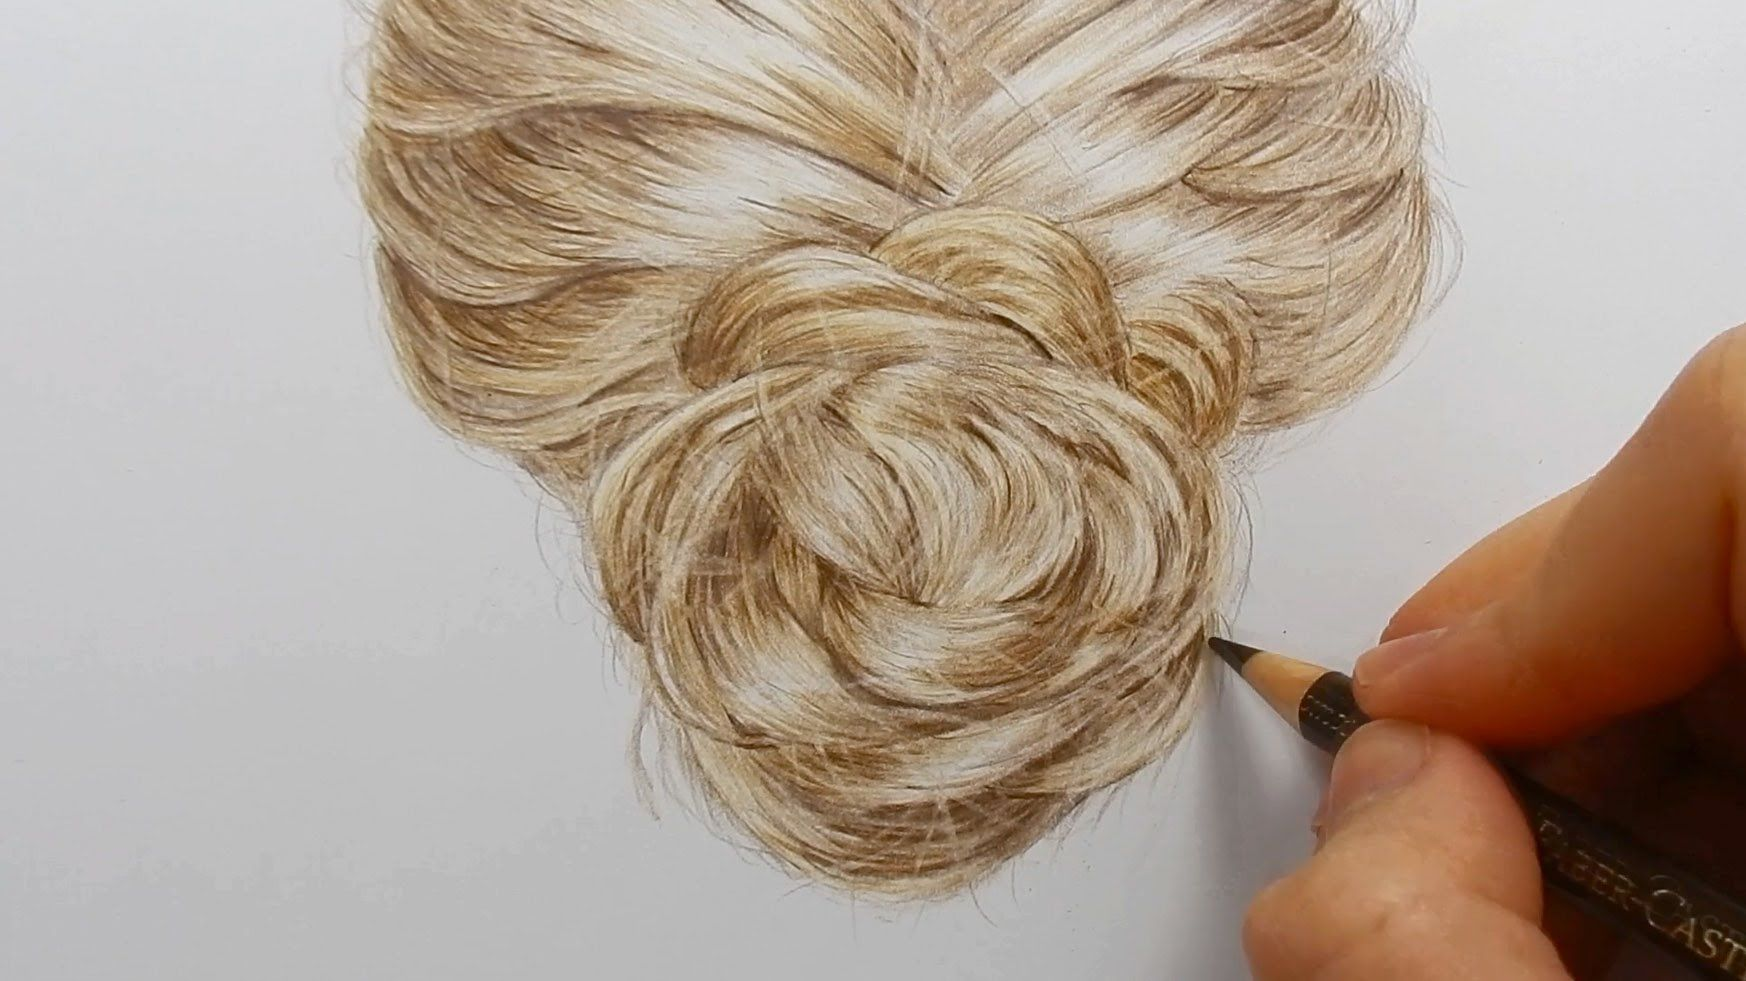 How to draw with colored pencils - 17 Best Images About Colored Pencil On Pinterest Colored Pencils Pencil And Tutorials